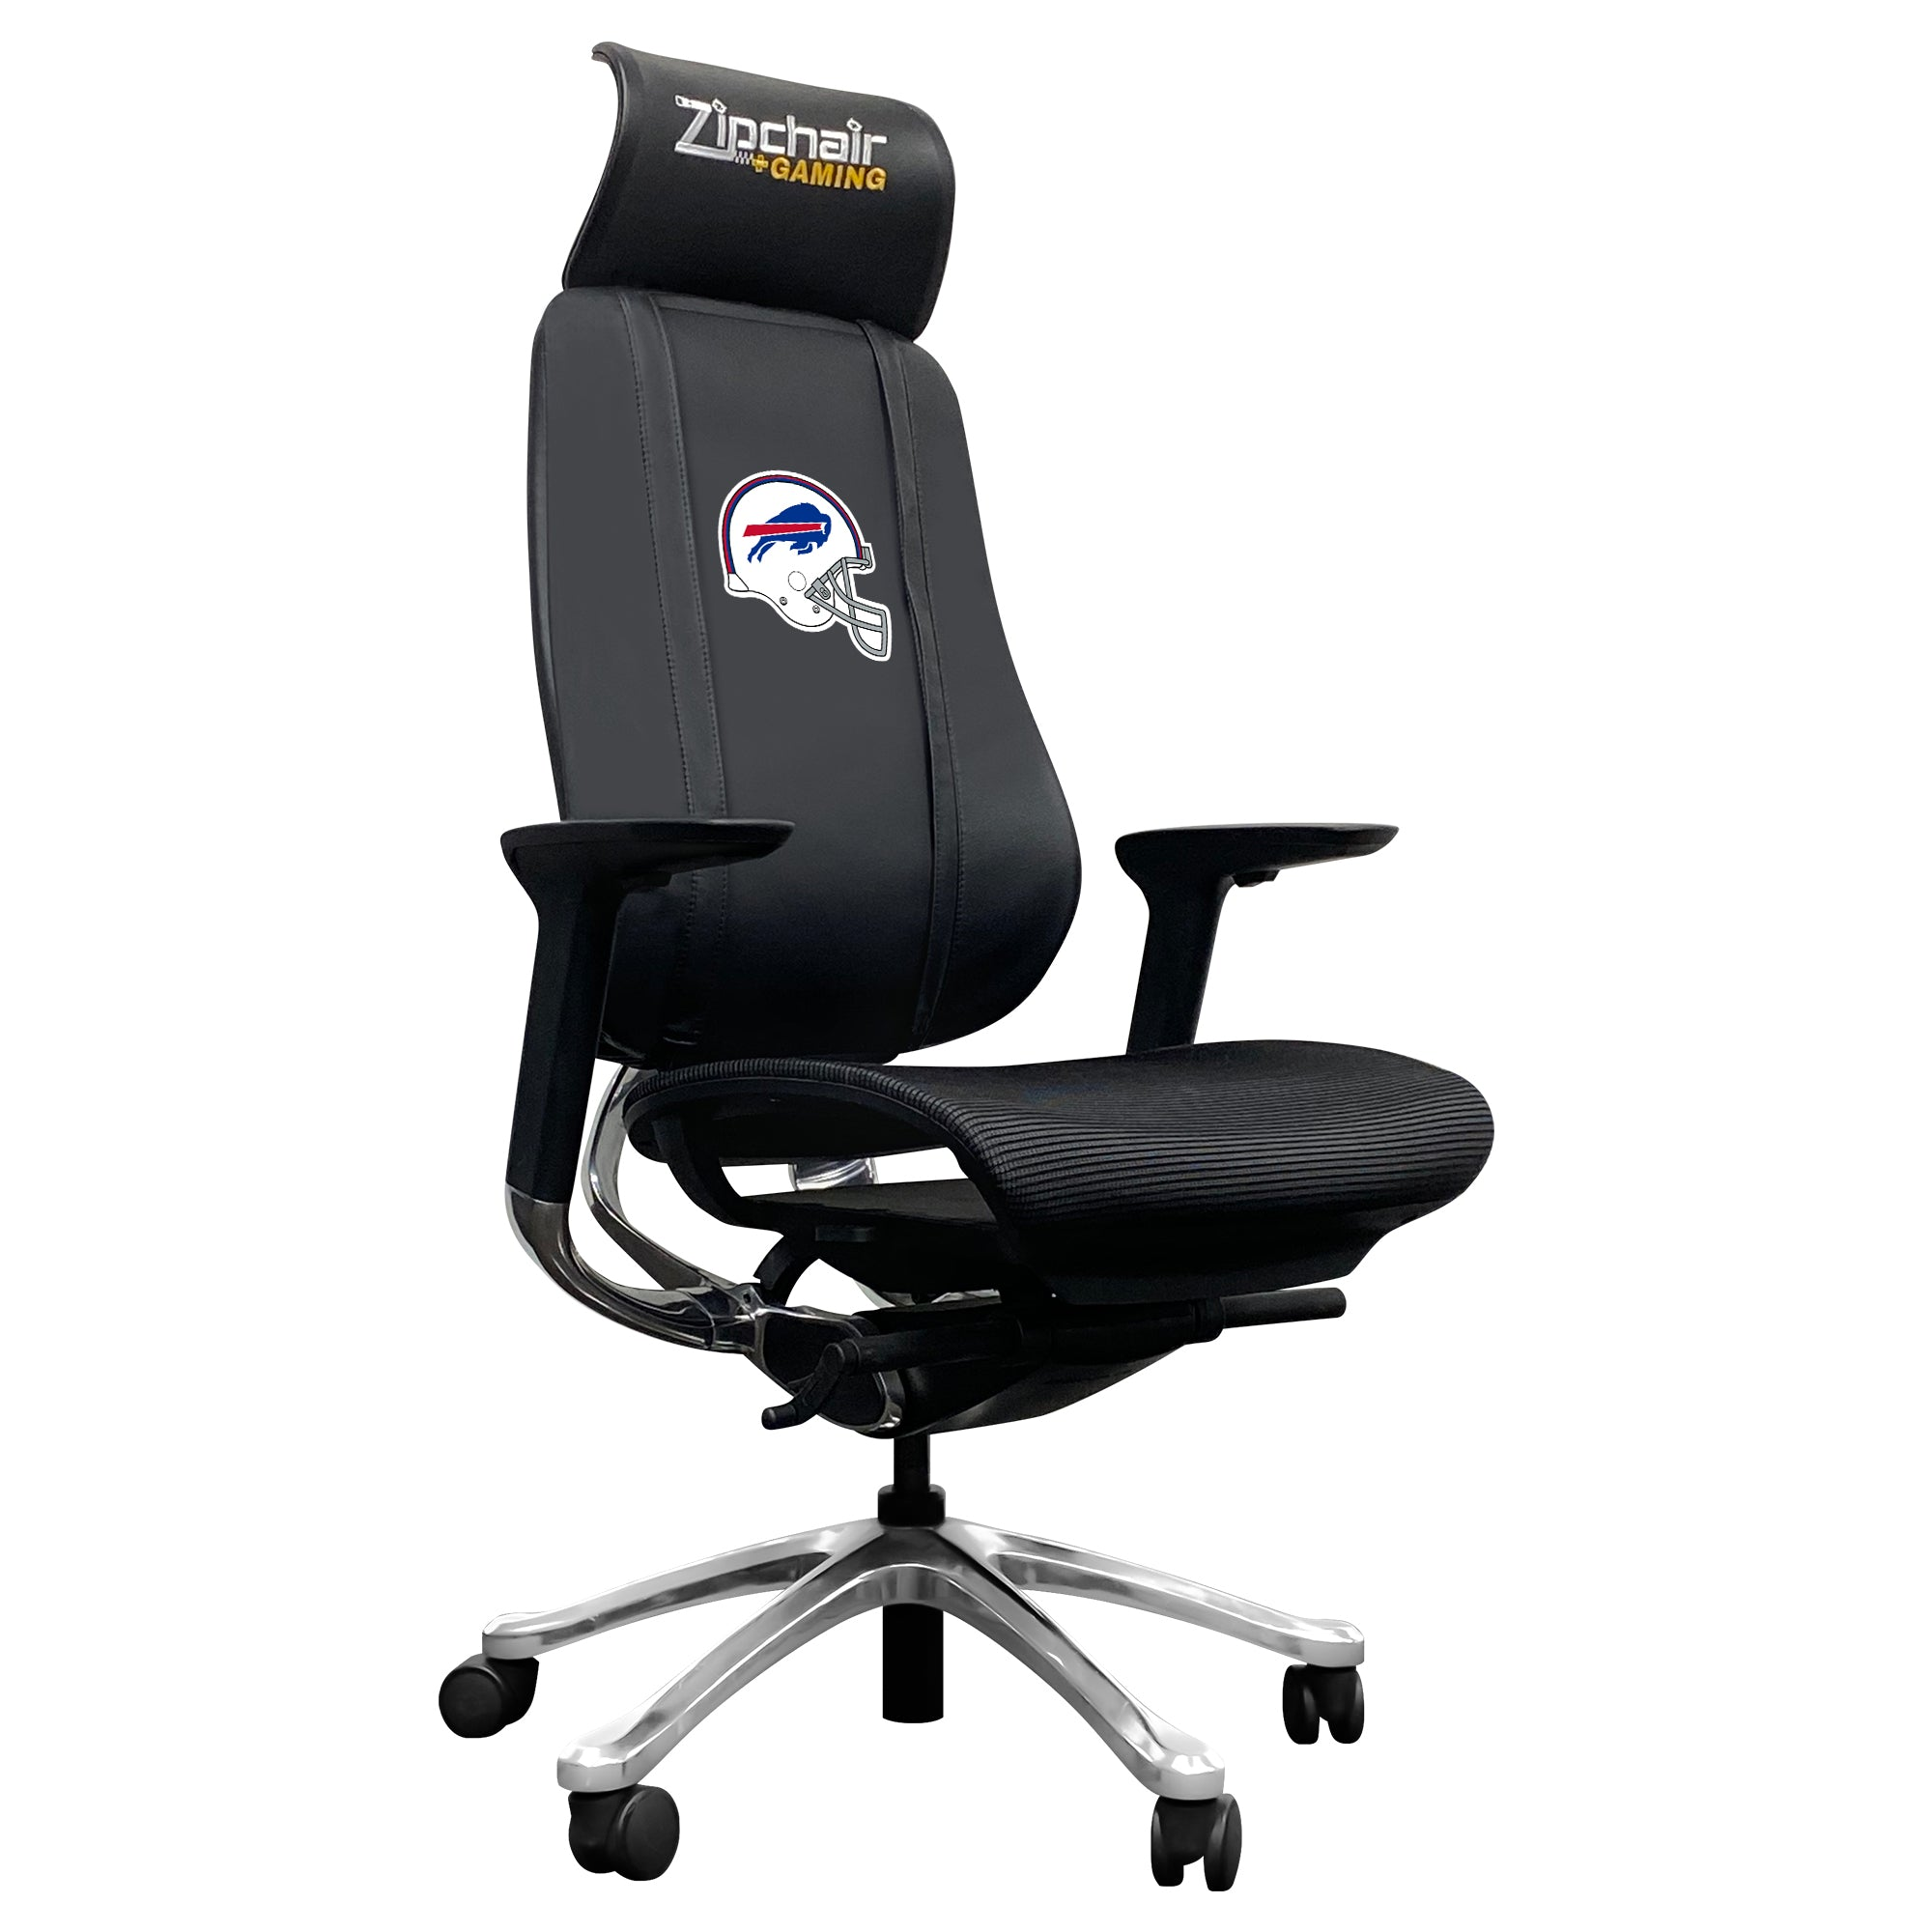 PhantomX Mesh Gaming Chair with  Buffalo Bills Helmet Logo